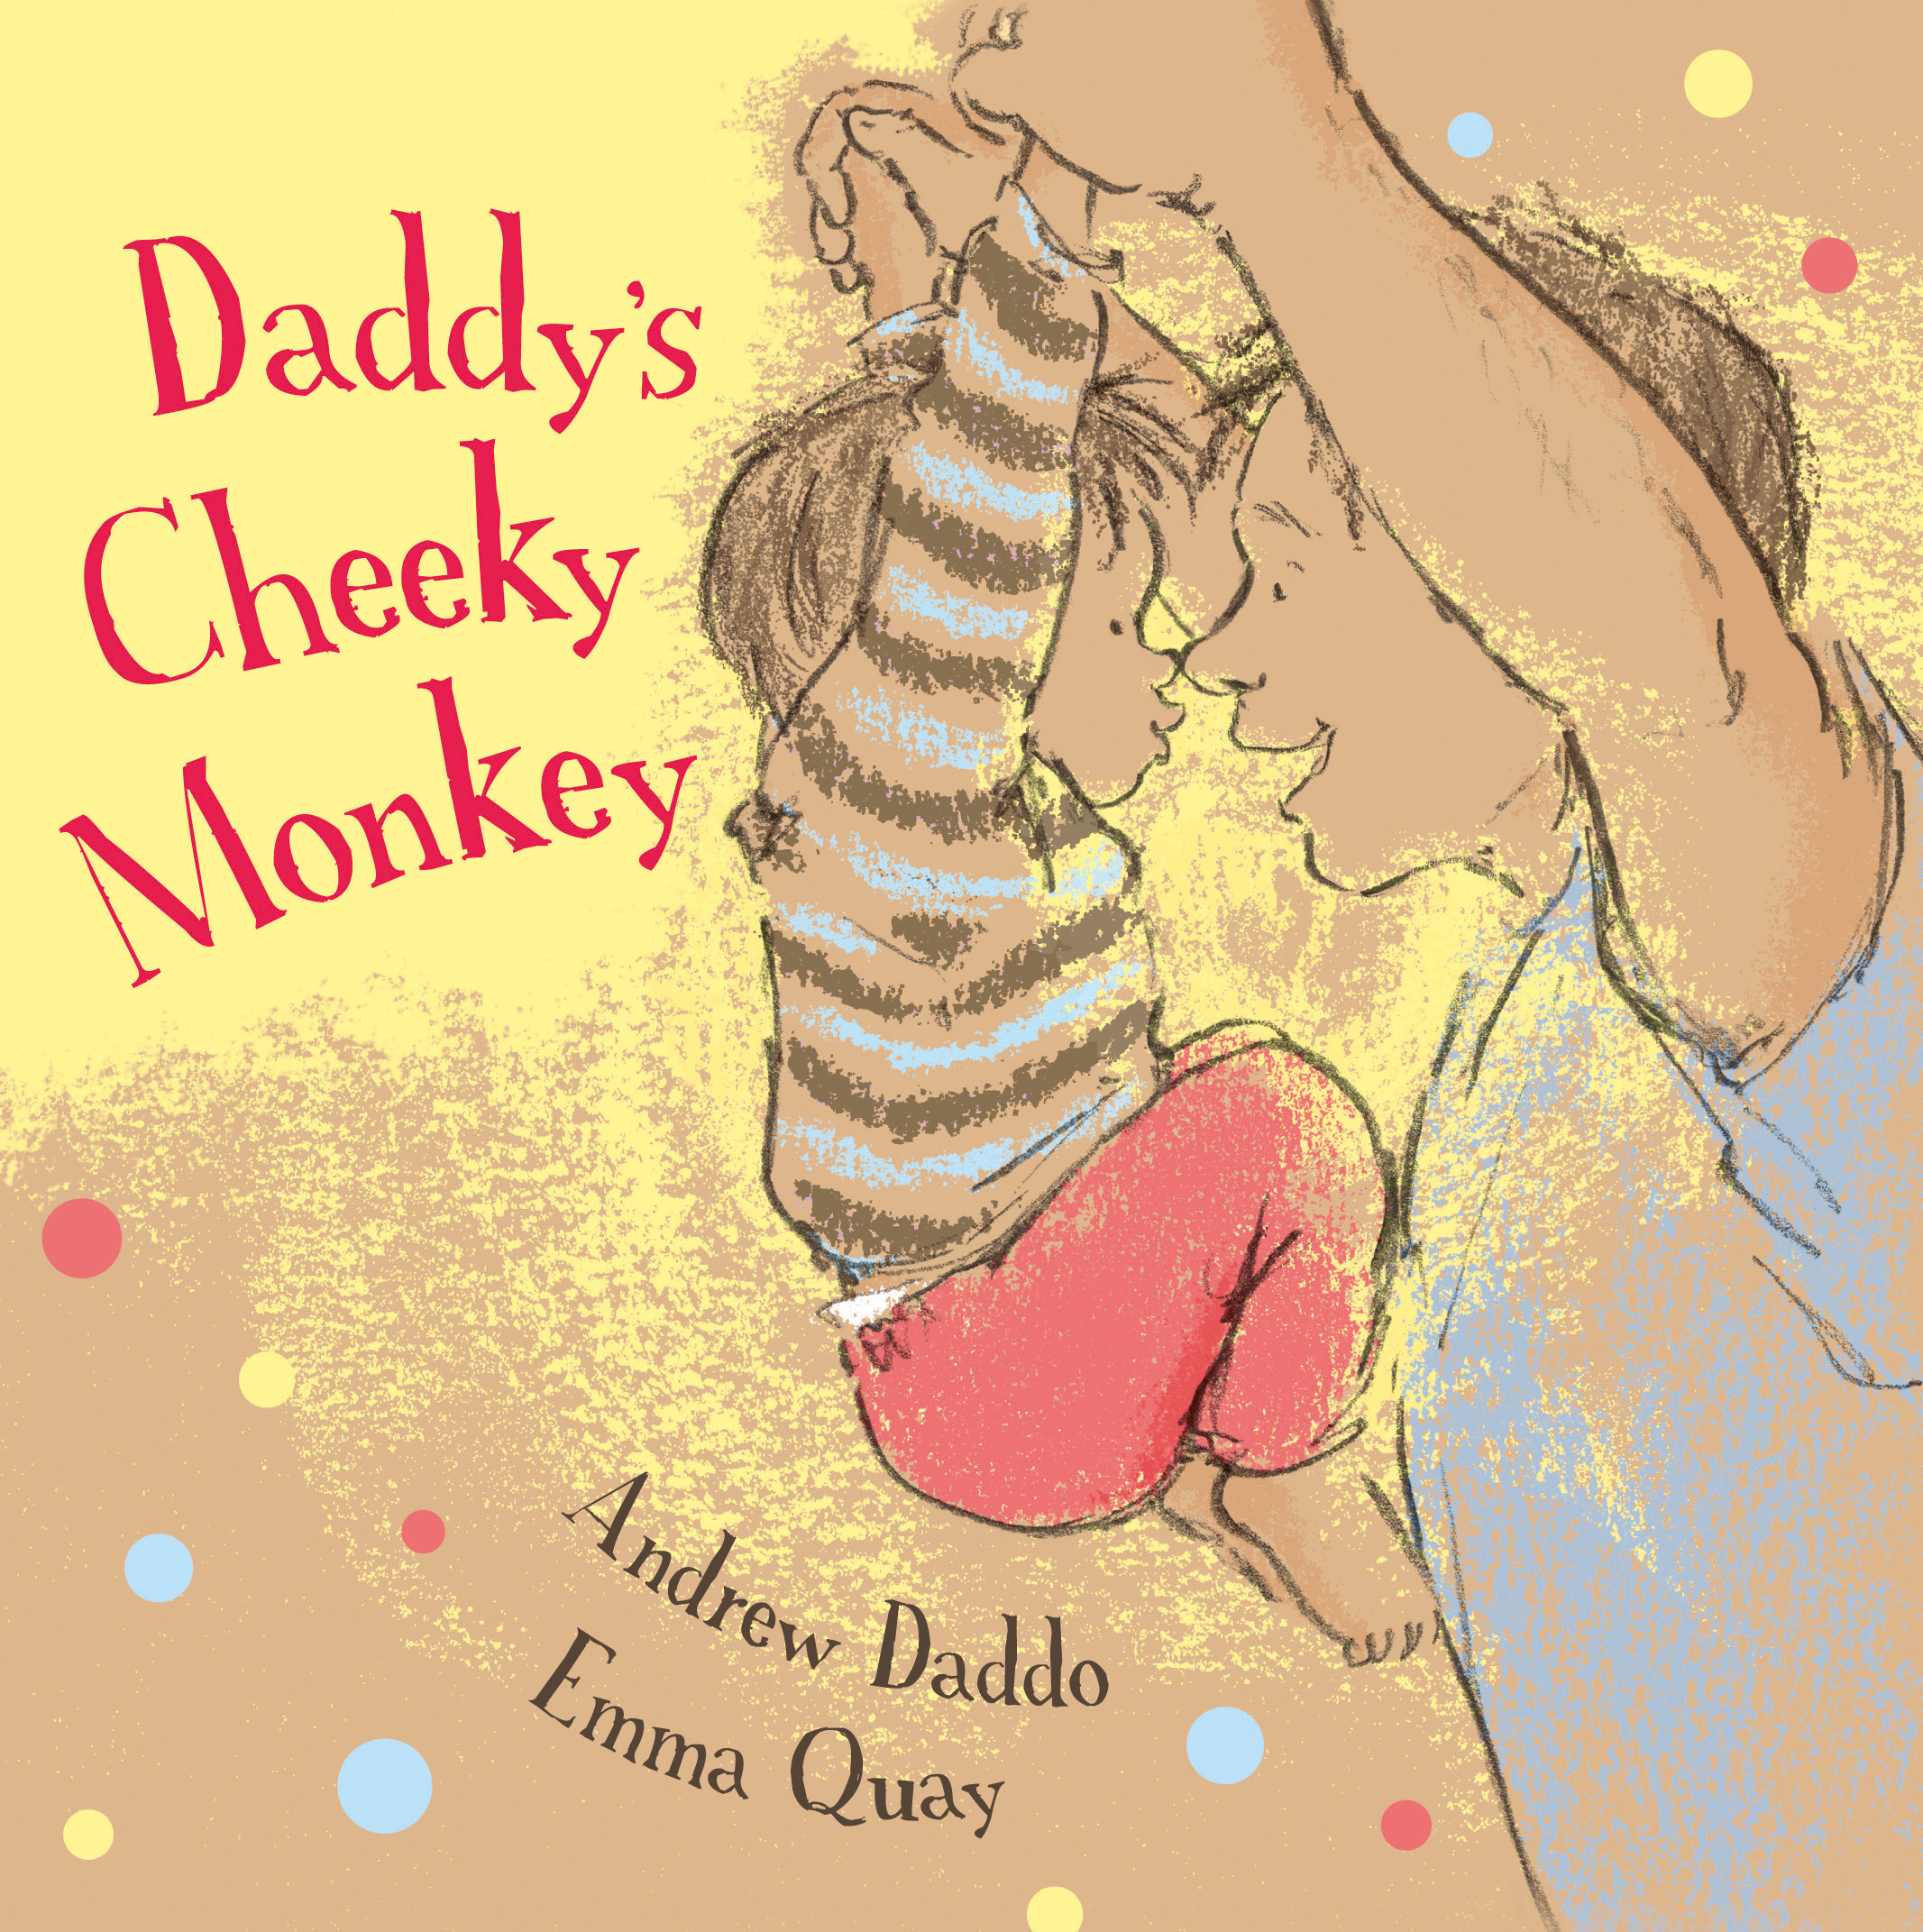 DADDY'S CHEEKY MONKEY by Andrew Daddo and Emma Quay (ABC Books)